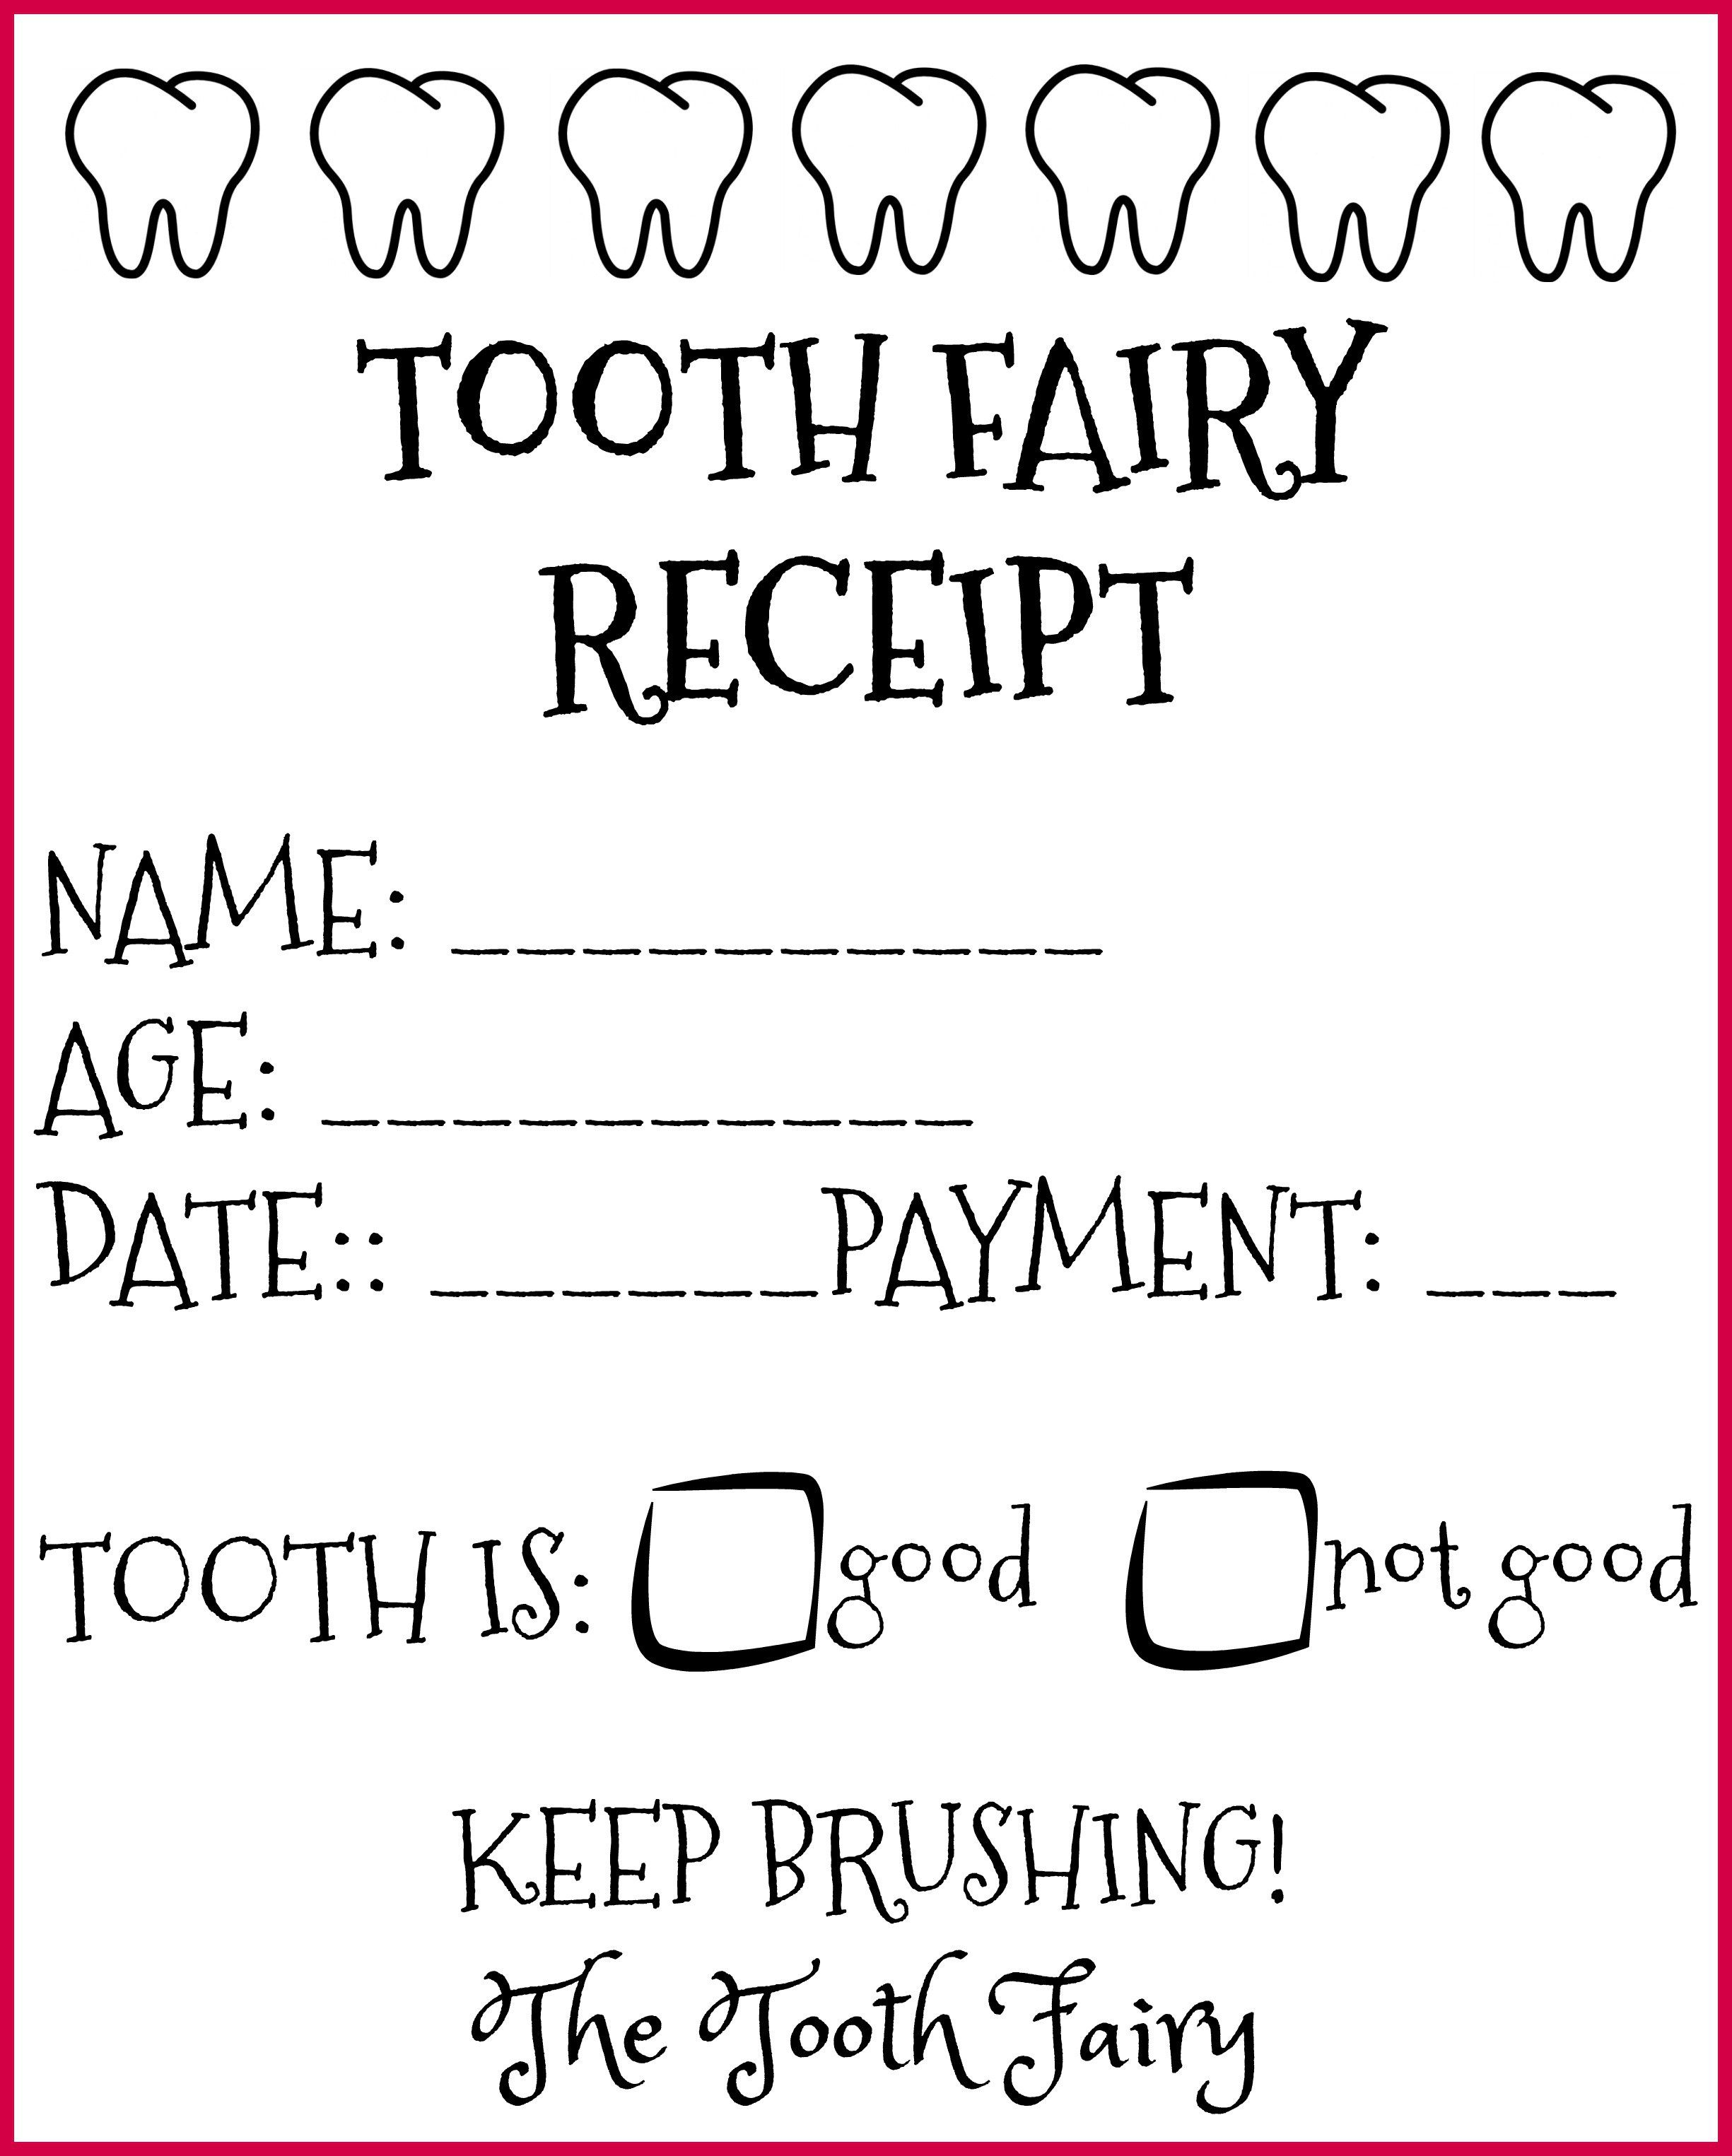 The Tooth Fairy Came! Free Printable Tooth Fairy Receipts in Spanish and English - LadydeeLG #toothfairyideas